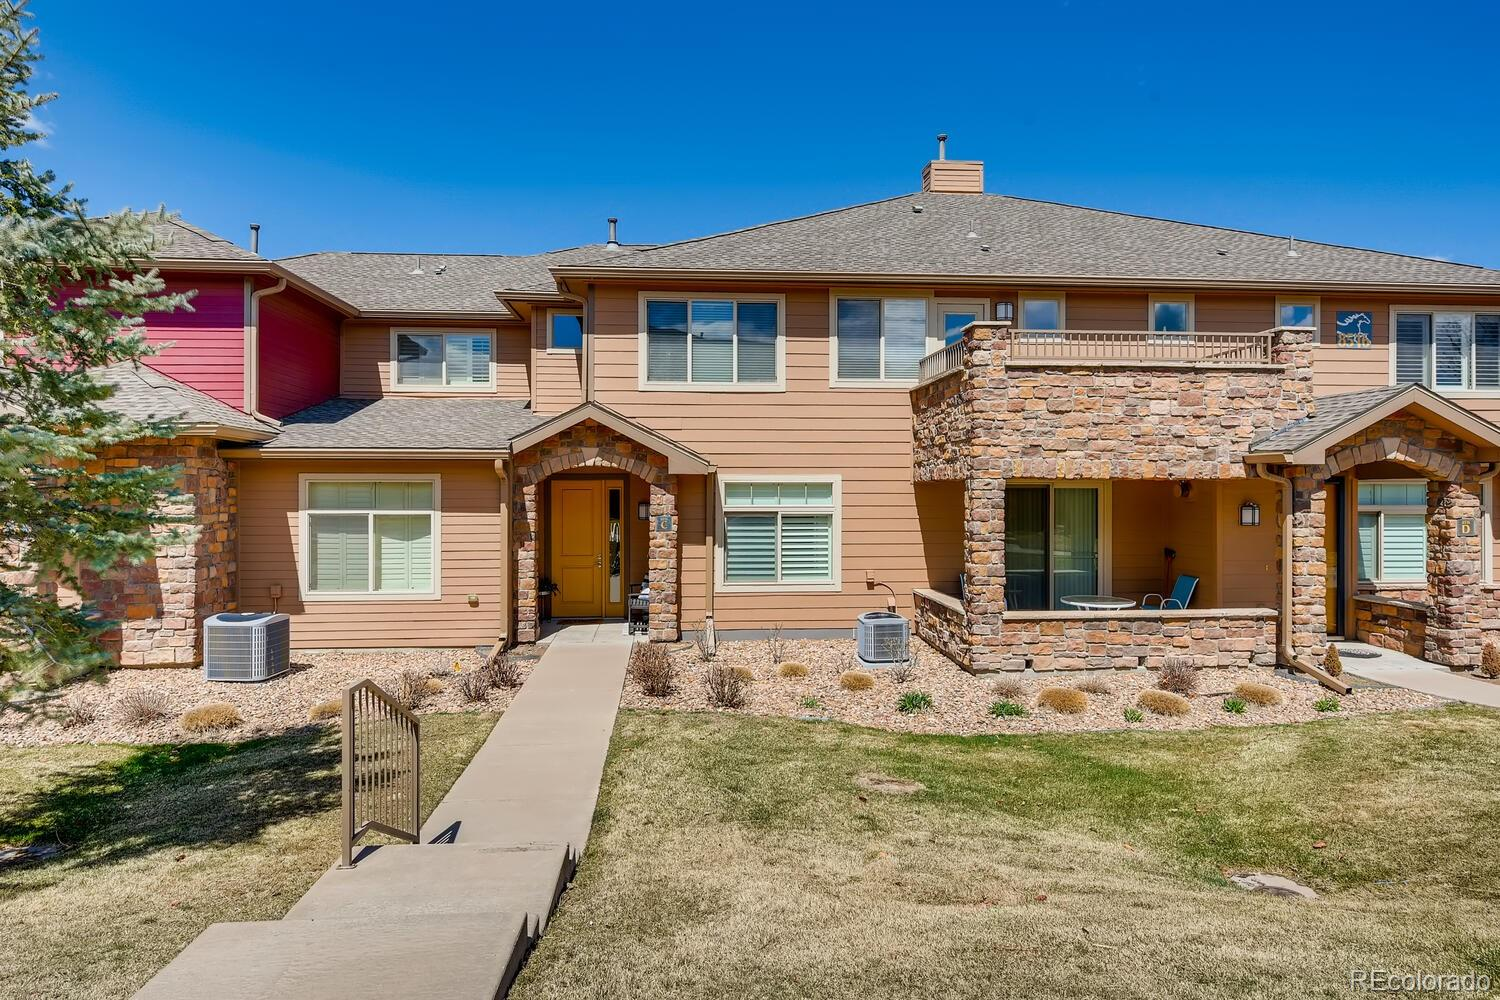 "Highly sought-after ""C"" unit along the quiet perimeter of Palomino Park. With north and south facing decks you have spots to enjoy every bit of Colorado's beautiful weather and views. This updated condo offers nearly 2 of everything - 2 bedrooms, 2 bathrooms, 2 living spaces, 2 decks, and 2 parking spaces in the finished, oversized garage. Natural light flows freely across the unit thanks to abundant windows and vaulted ceilings. Updates in this unit include: engineered hardwood floor throughout the main level, upgraded cabinetry w/ under- and over-cabinet lighting, updated backsplash and fireplace tile work, new and upgraded 3-panel window w/ extra-wide slider, Silhouette window coverings, updated lighting, new appliances, new water heater, water softener, gas line in kitchen, gas line to patio, neutral paint throughout. Enjoy resort-style living in this gated community. Amenities include: the Colorado Club, outdoor swimming pool w/cabanas; health club; racquetball, basketball, tennis, and volleyball courts;  soccer and baseball fields; frisbee golf course; putting green and driving-range room; walking paths and a dog park. There is also a private Cabana and hot tub area for Gold Peak Village residents just a short walk away. Visit www.palominopark.com for amenity photographs and more information."